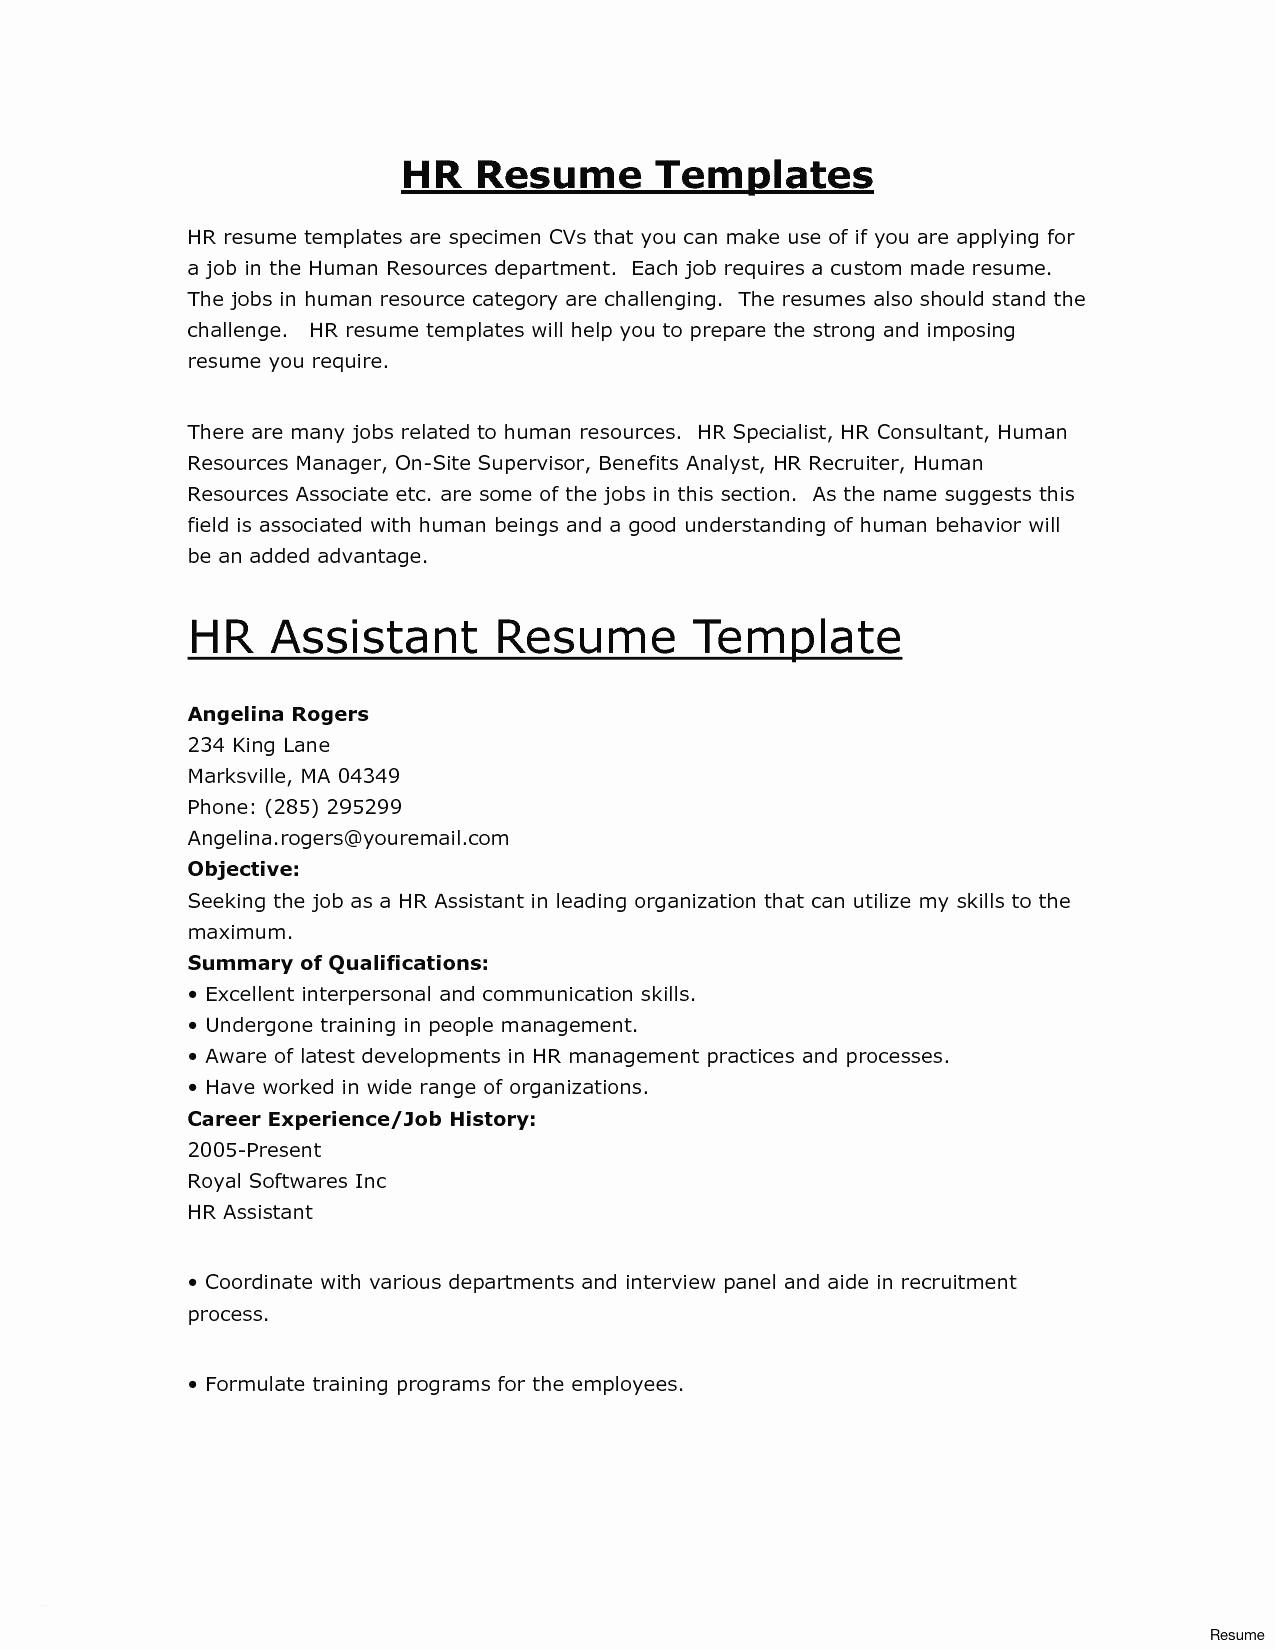 Resume Template with Volunteer Experience - Volunteer Experience Resume Examples Unique Entry Level Resume